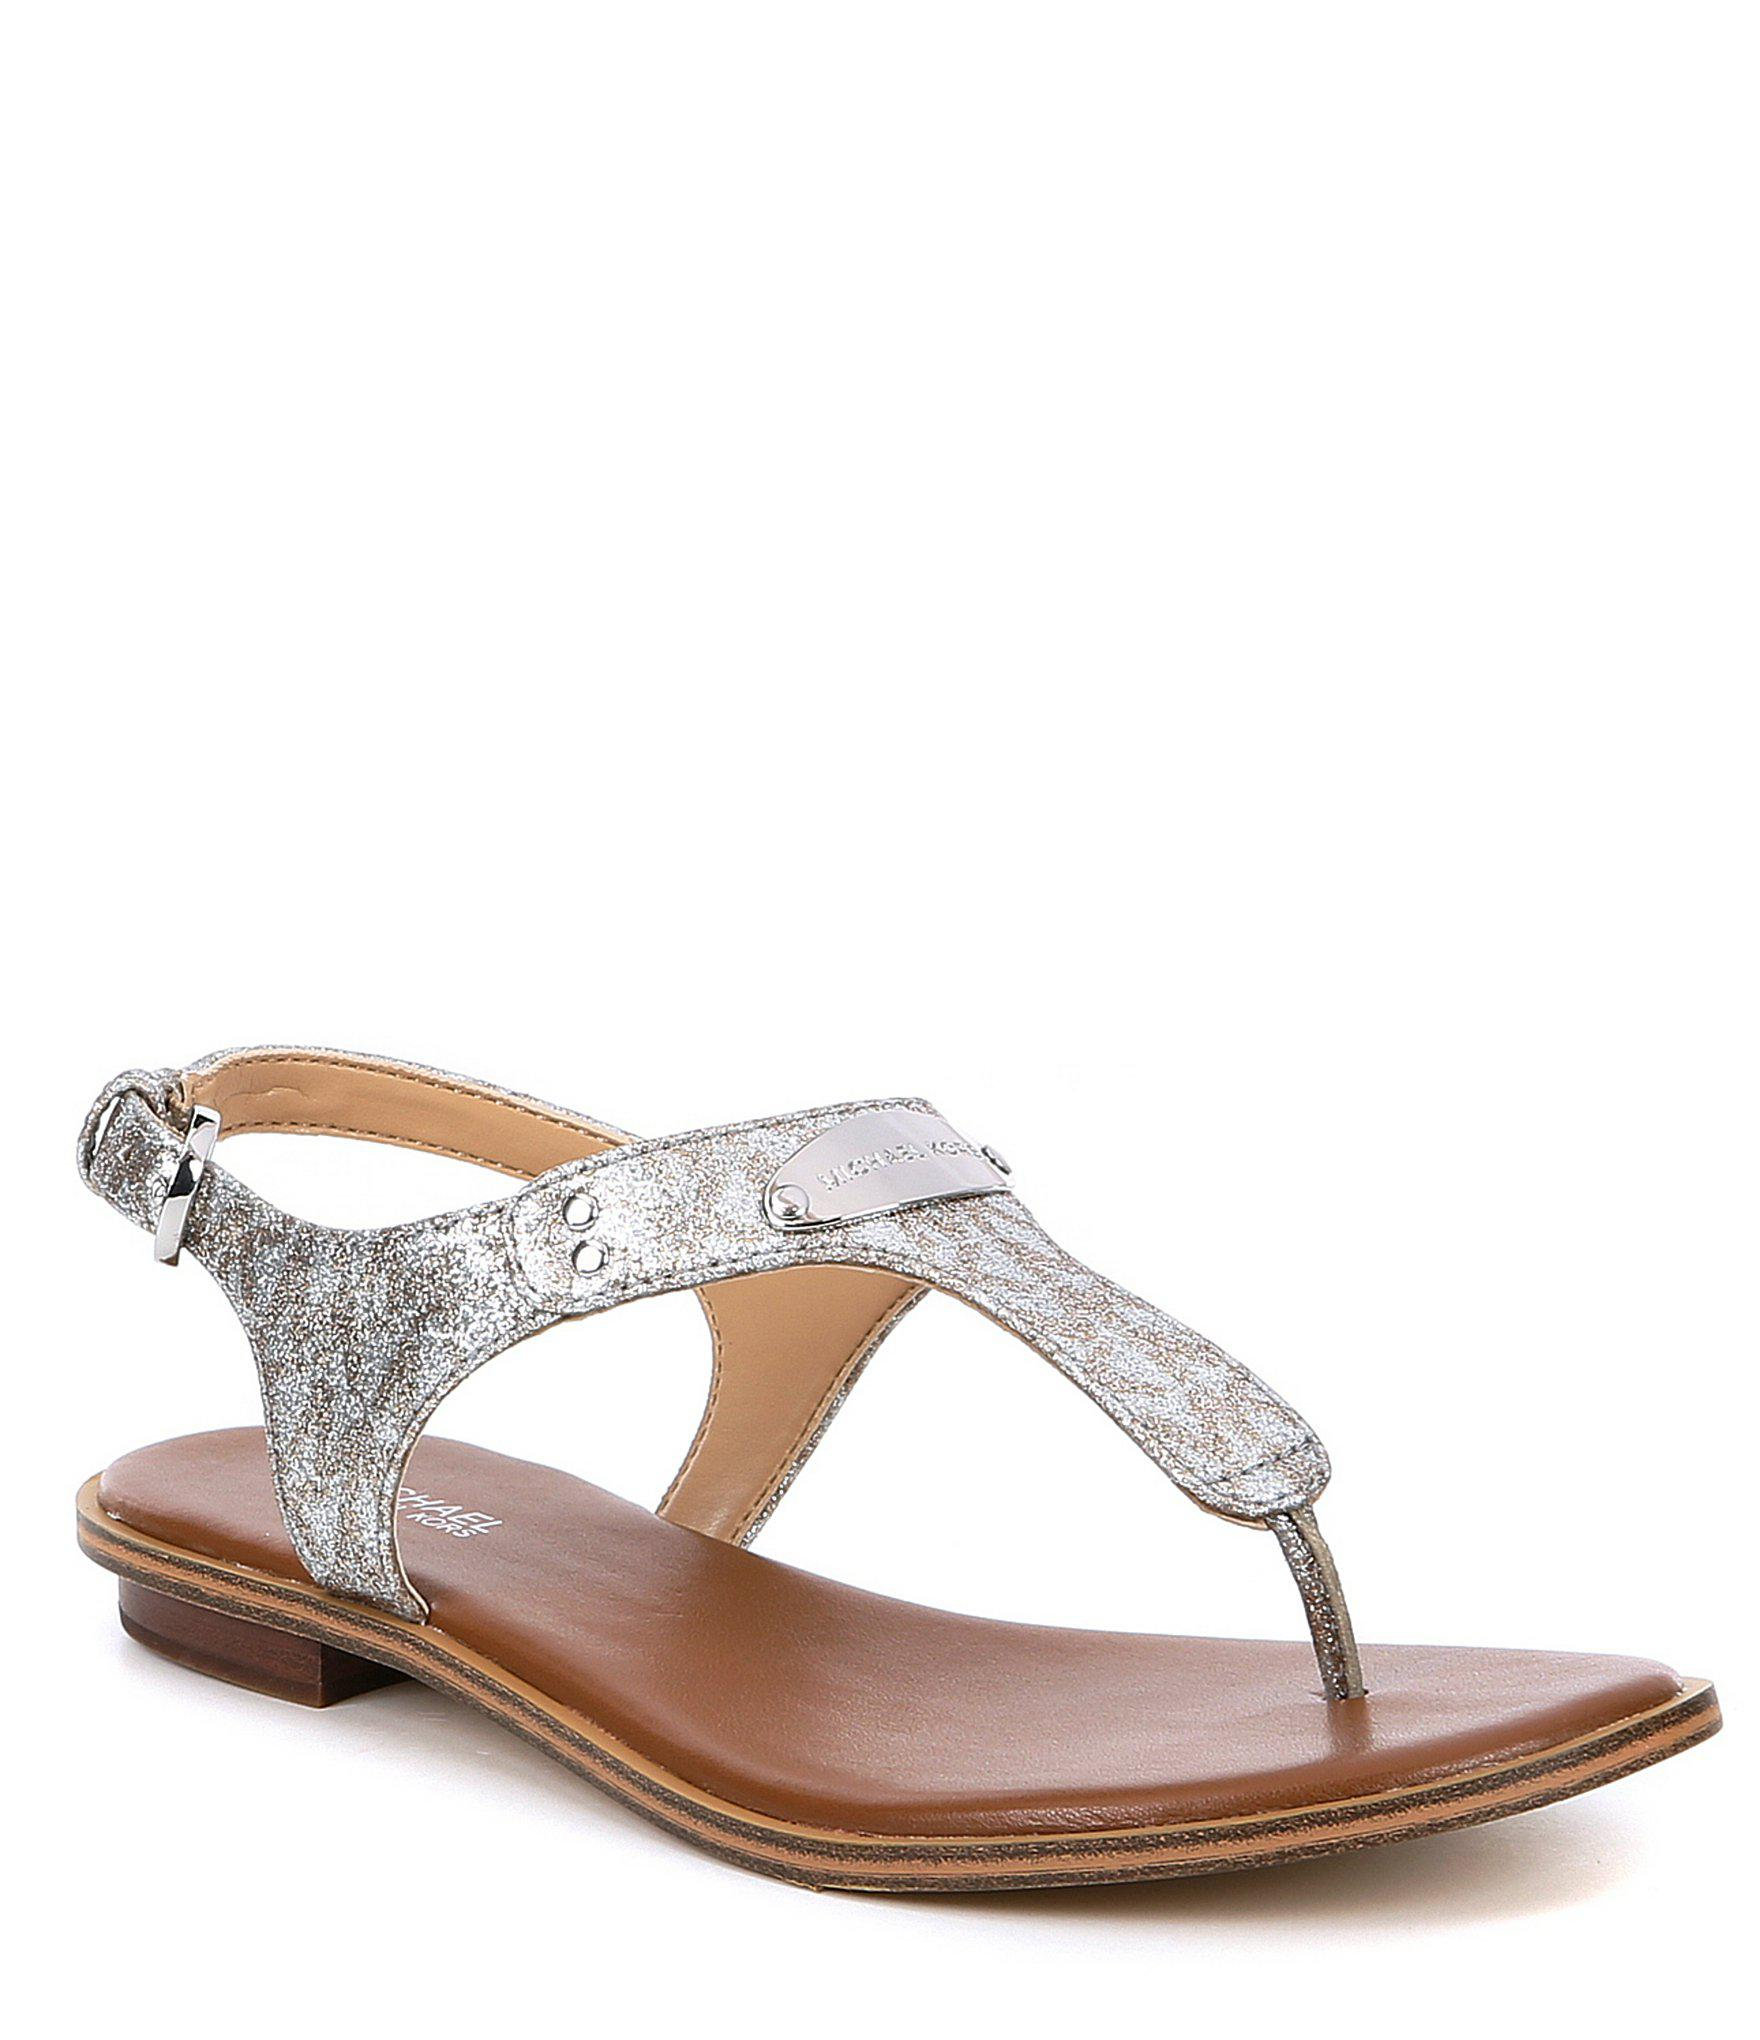 cce8e3b4cd69 Lyst - Michael Michael Kors Mk Plate Glitter Thongs in Metallic